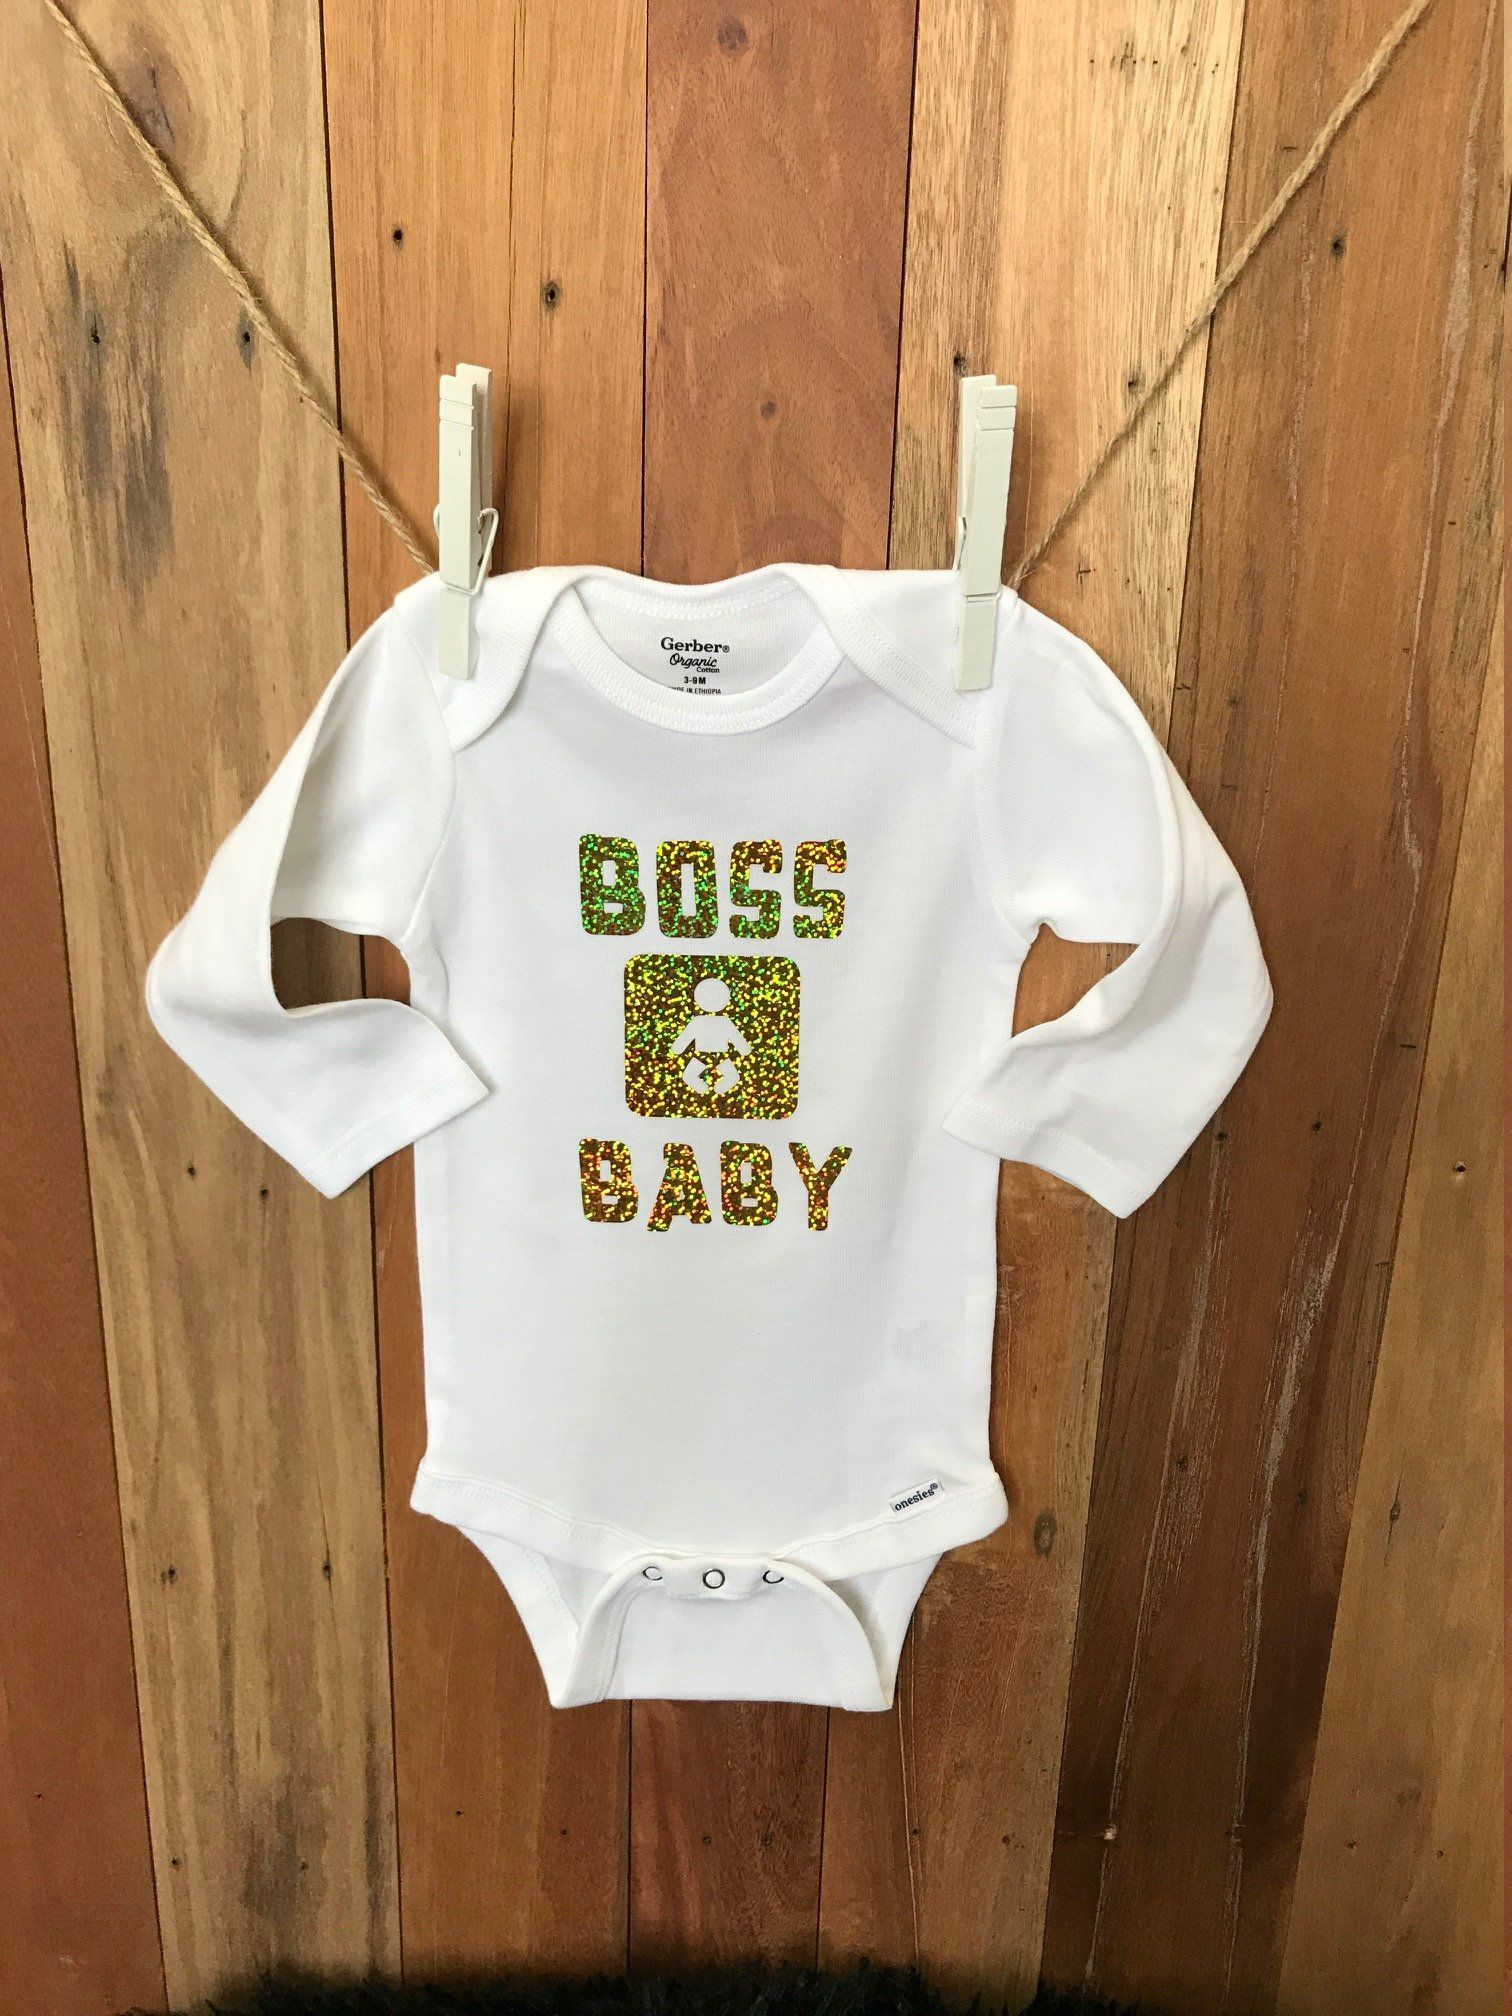 851501e3d Girl Boss Baby, Baby Clothes, Baby Girl Clothes, Onesie, Baby Boy Clothes, Cute  Boss Outfit, , Baby Shower Gift, Cute Baby Onesie